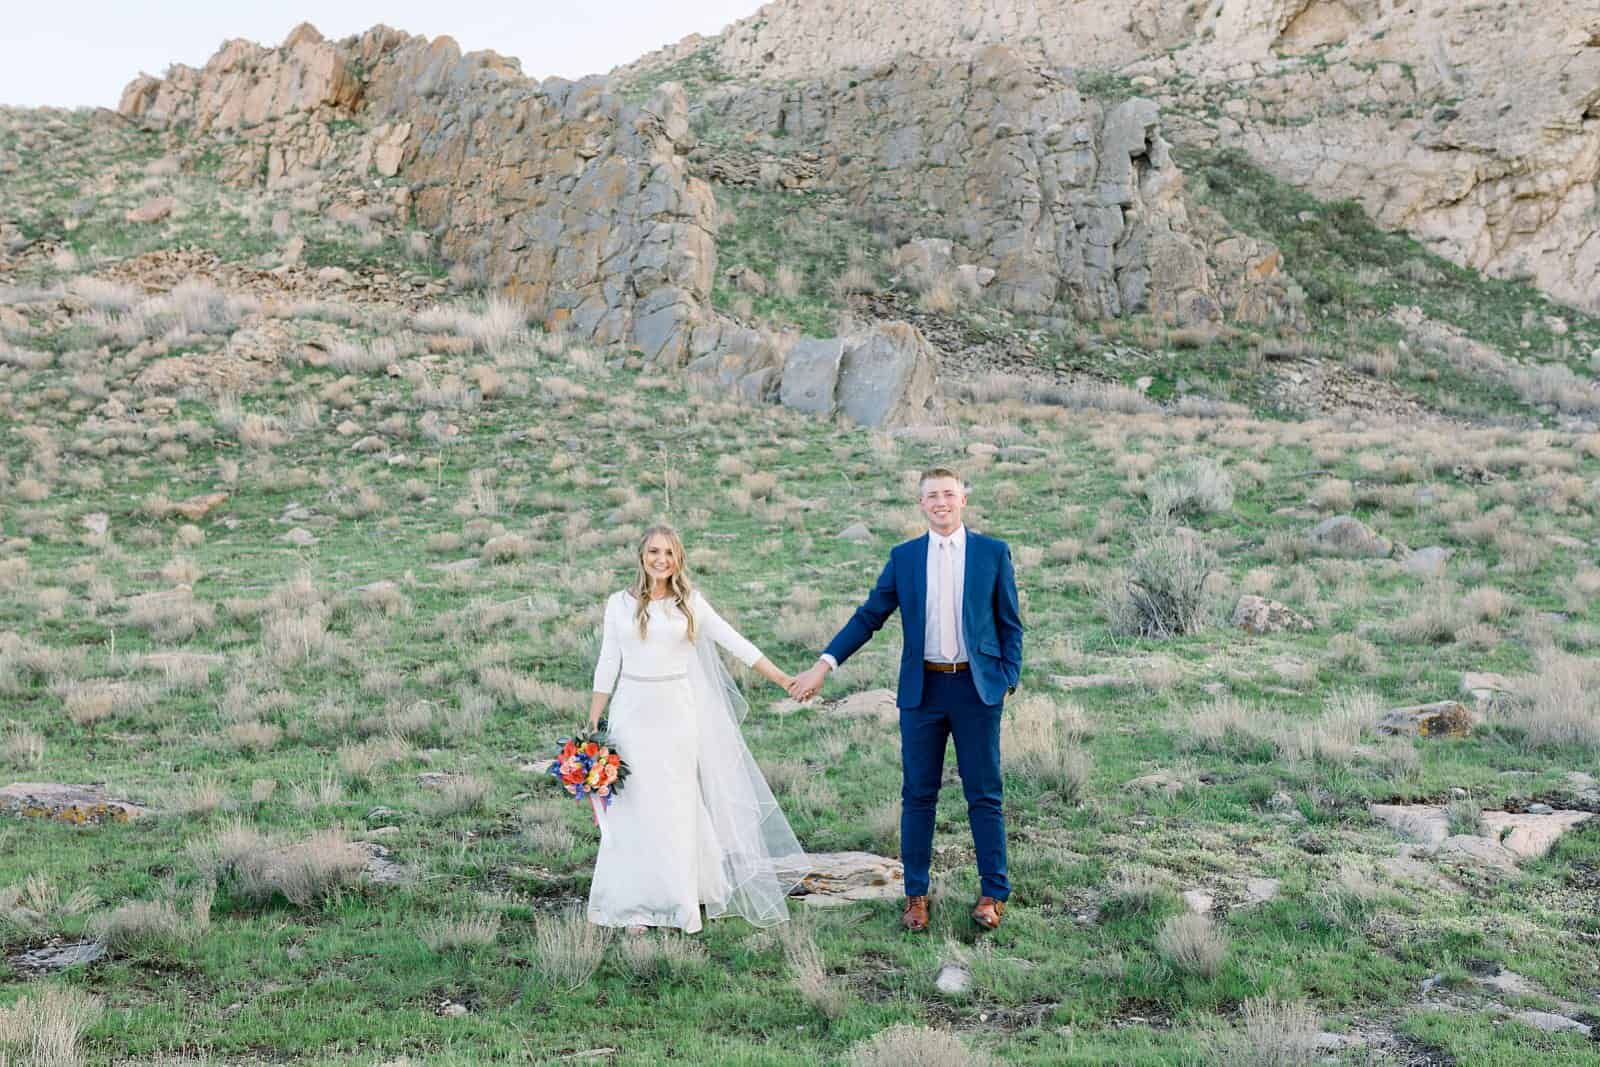 Ireland field, bride and groom, Utah mountains, nature wedding photography, bride and groom spring wedding